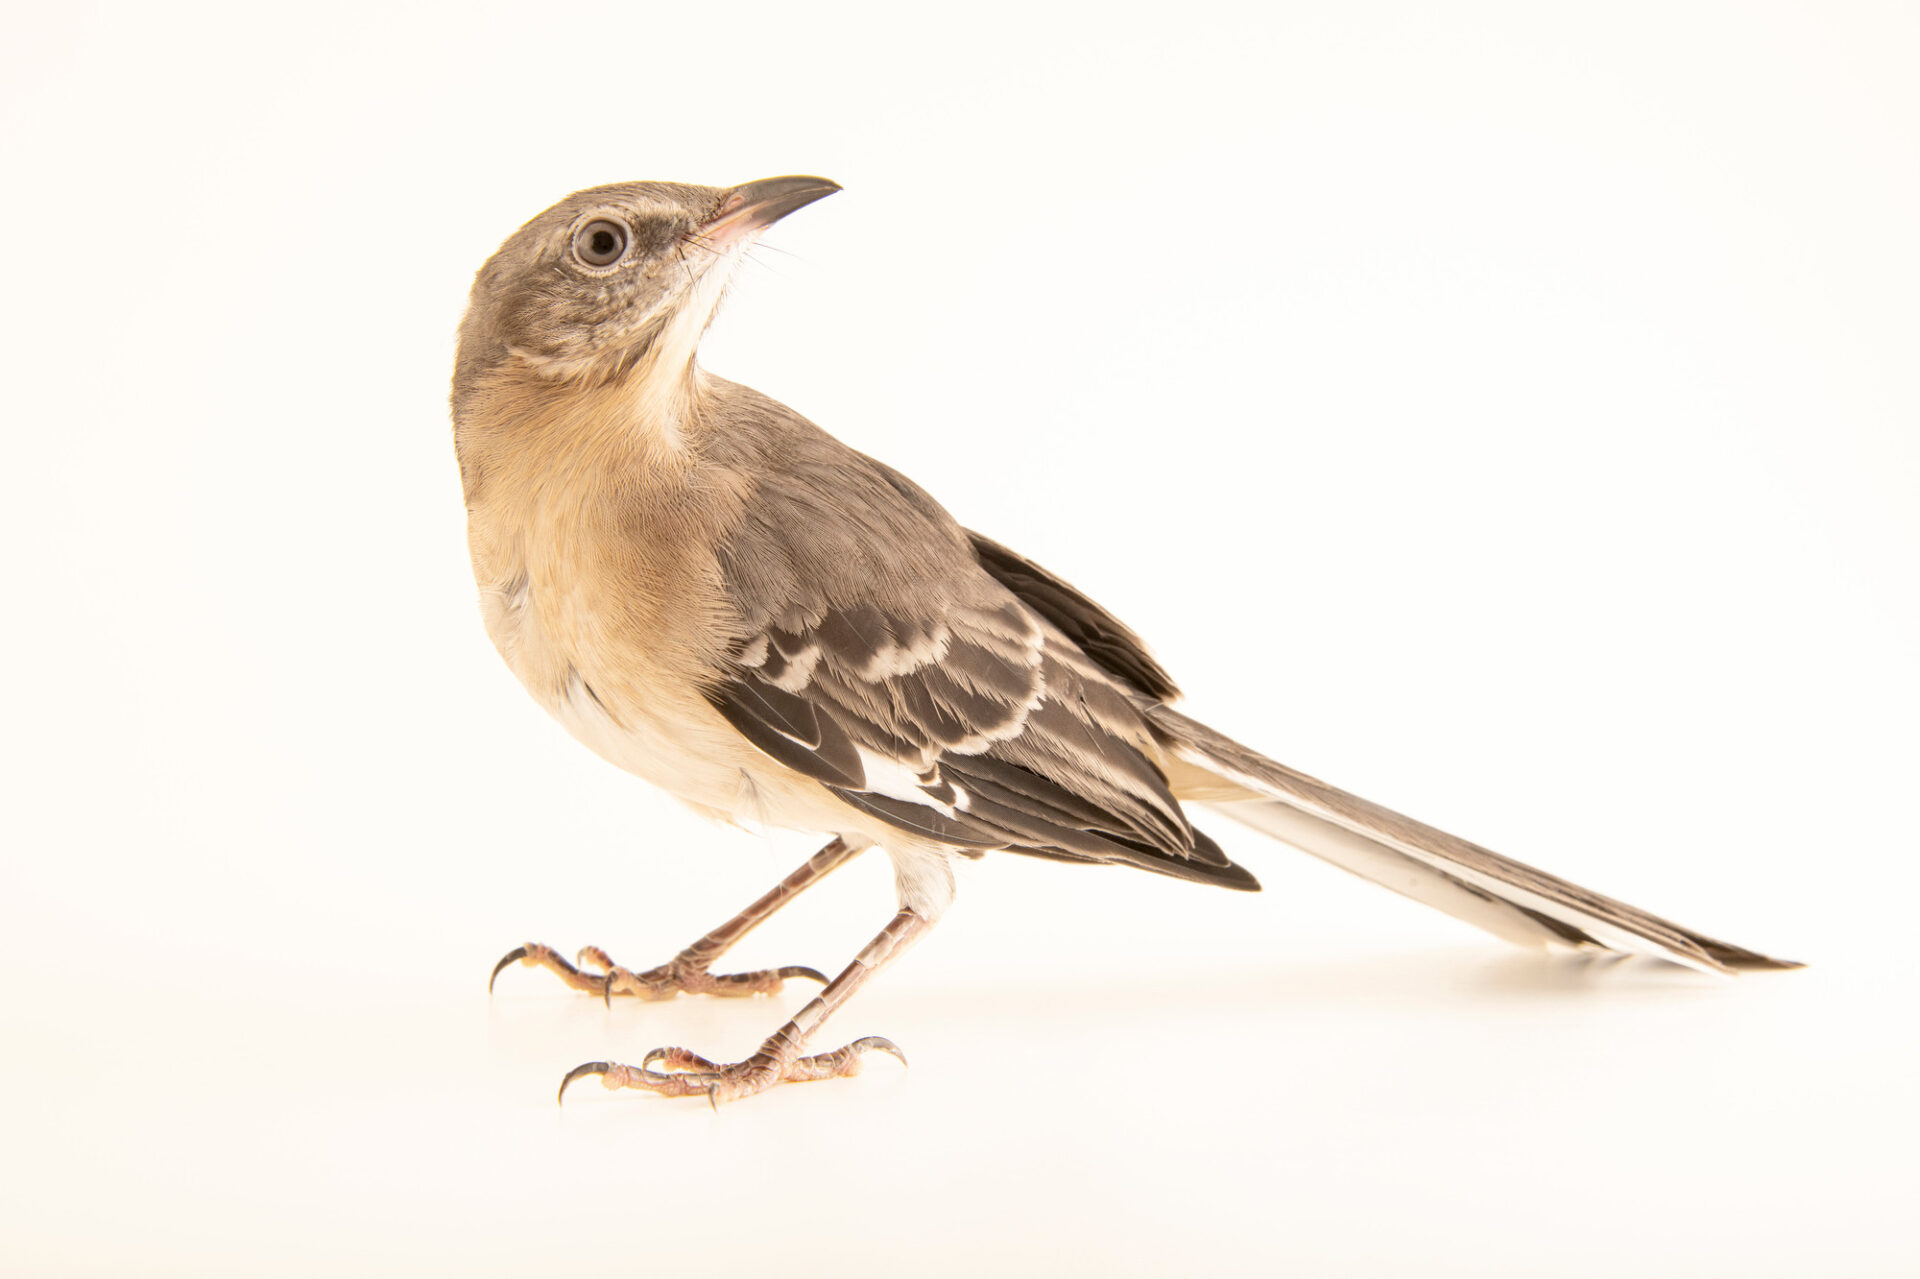 Photo: A northern mockingbird (Mimus polyglottos polyglottos) at the Carolina Wildlife Center, a place that rescues and rehabilitates injured and orphaned wildlife.